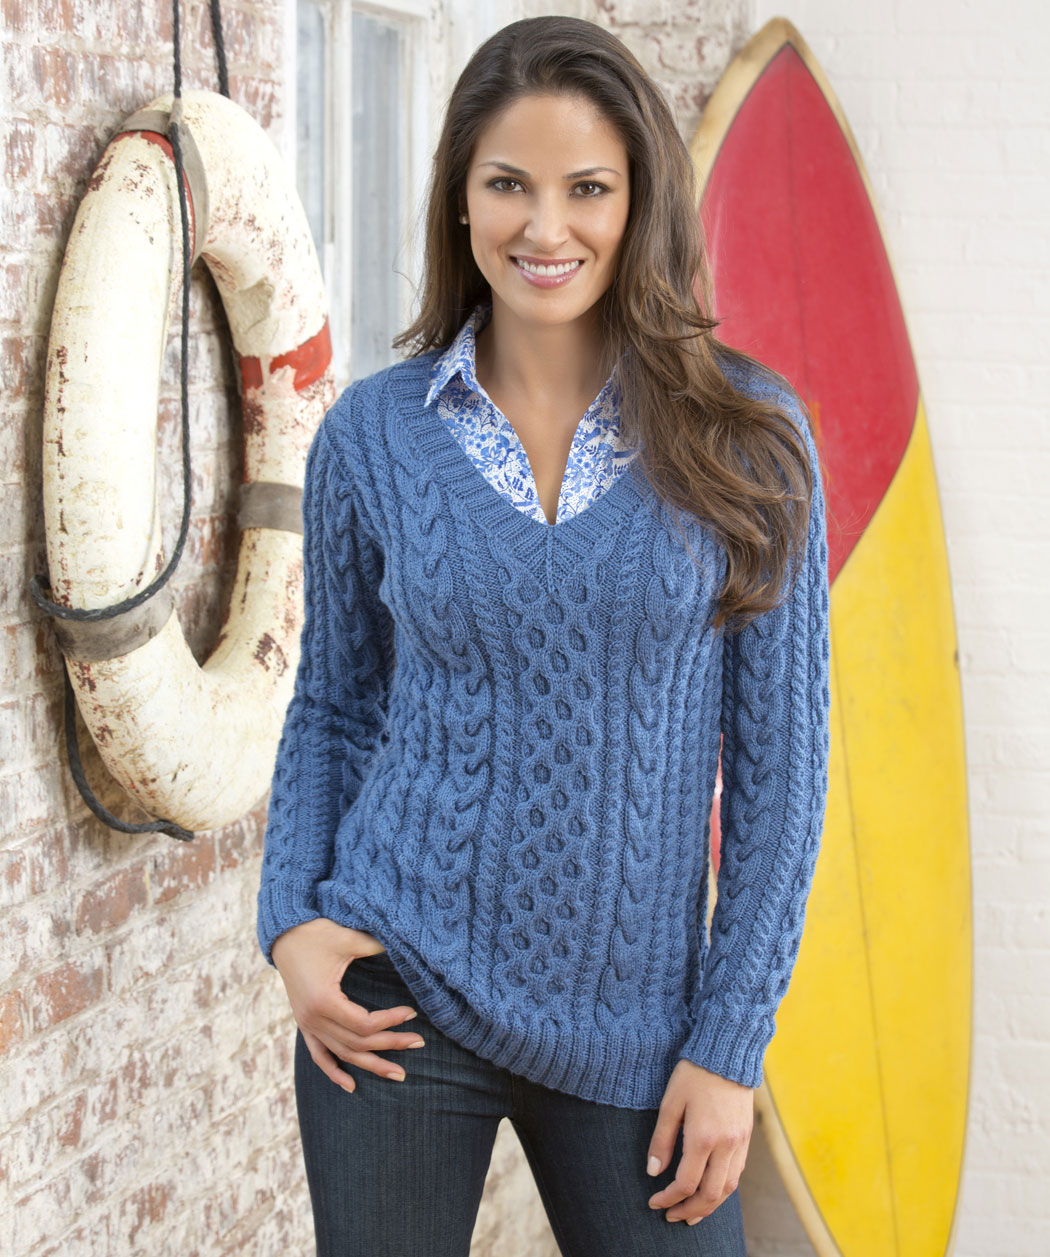 Knitting Patterns For Cardigan Sweaters : Cable Knit Sweater Patterns A Knitting Blog